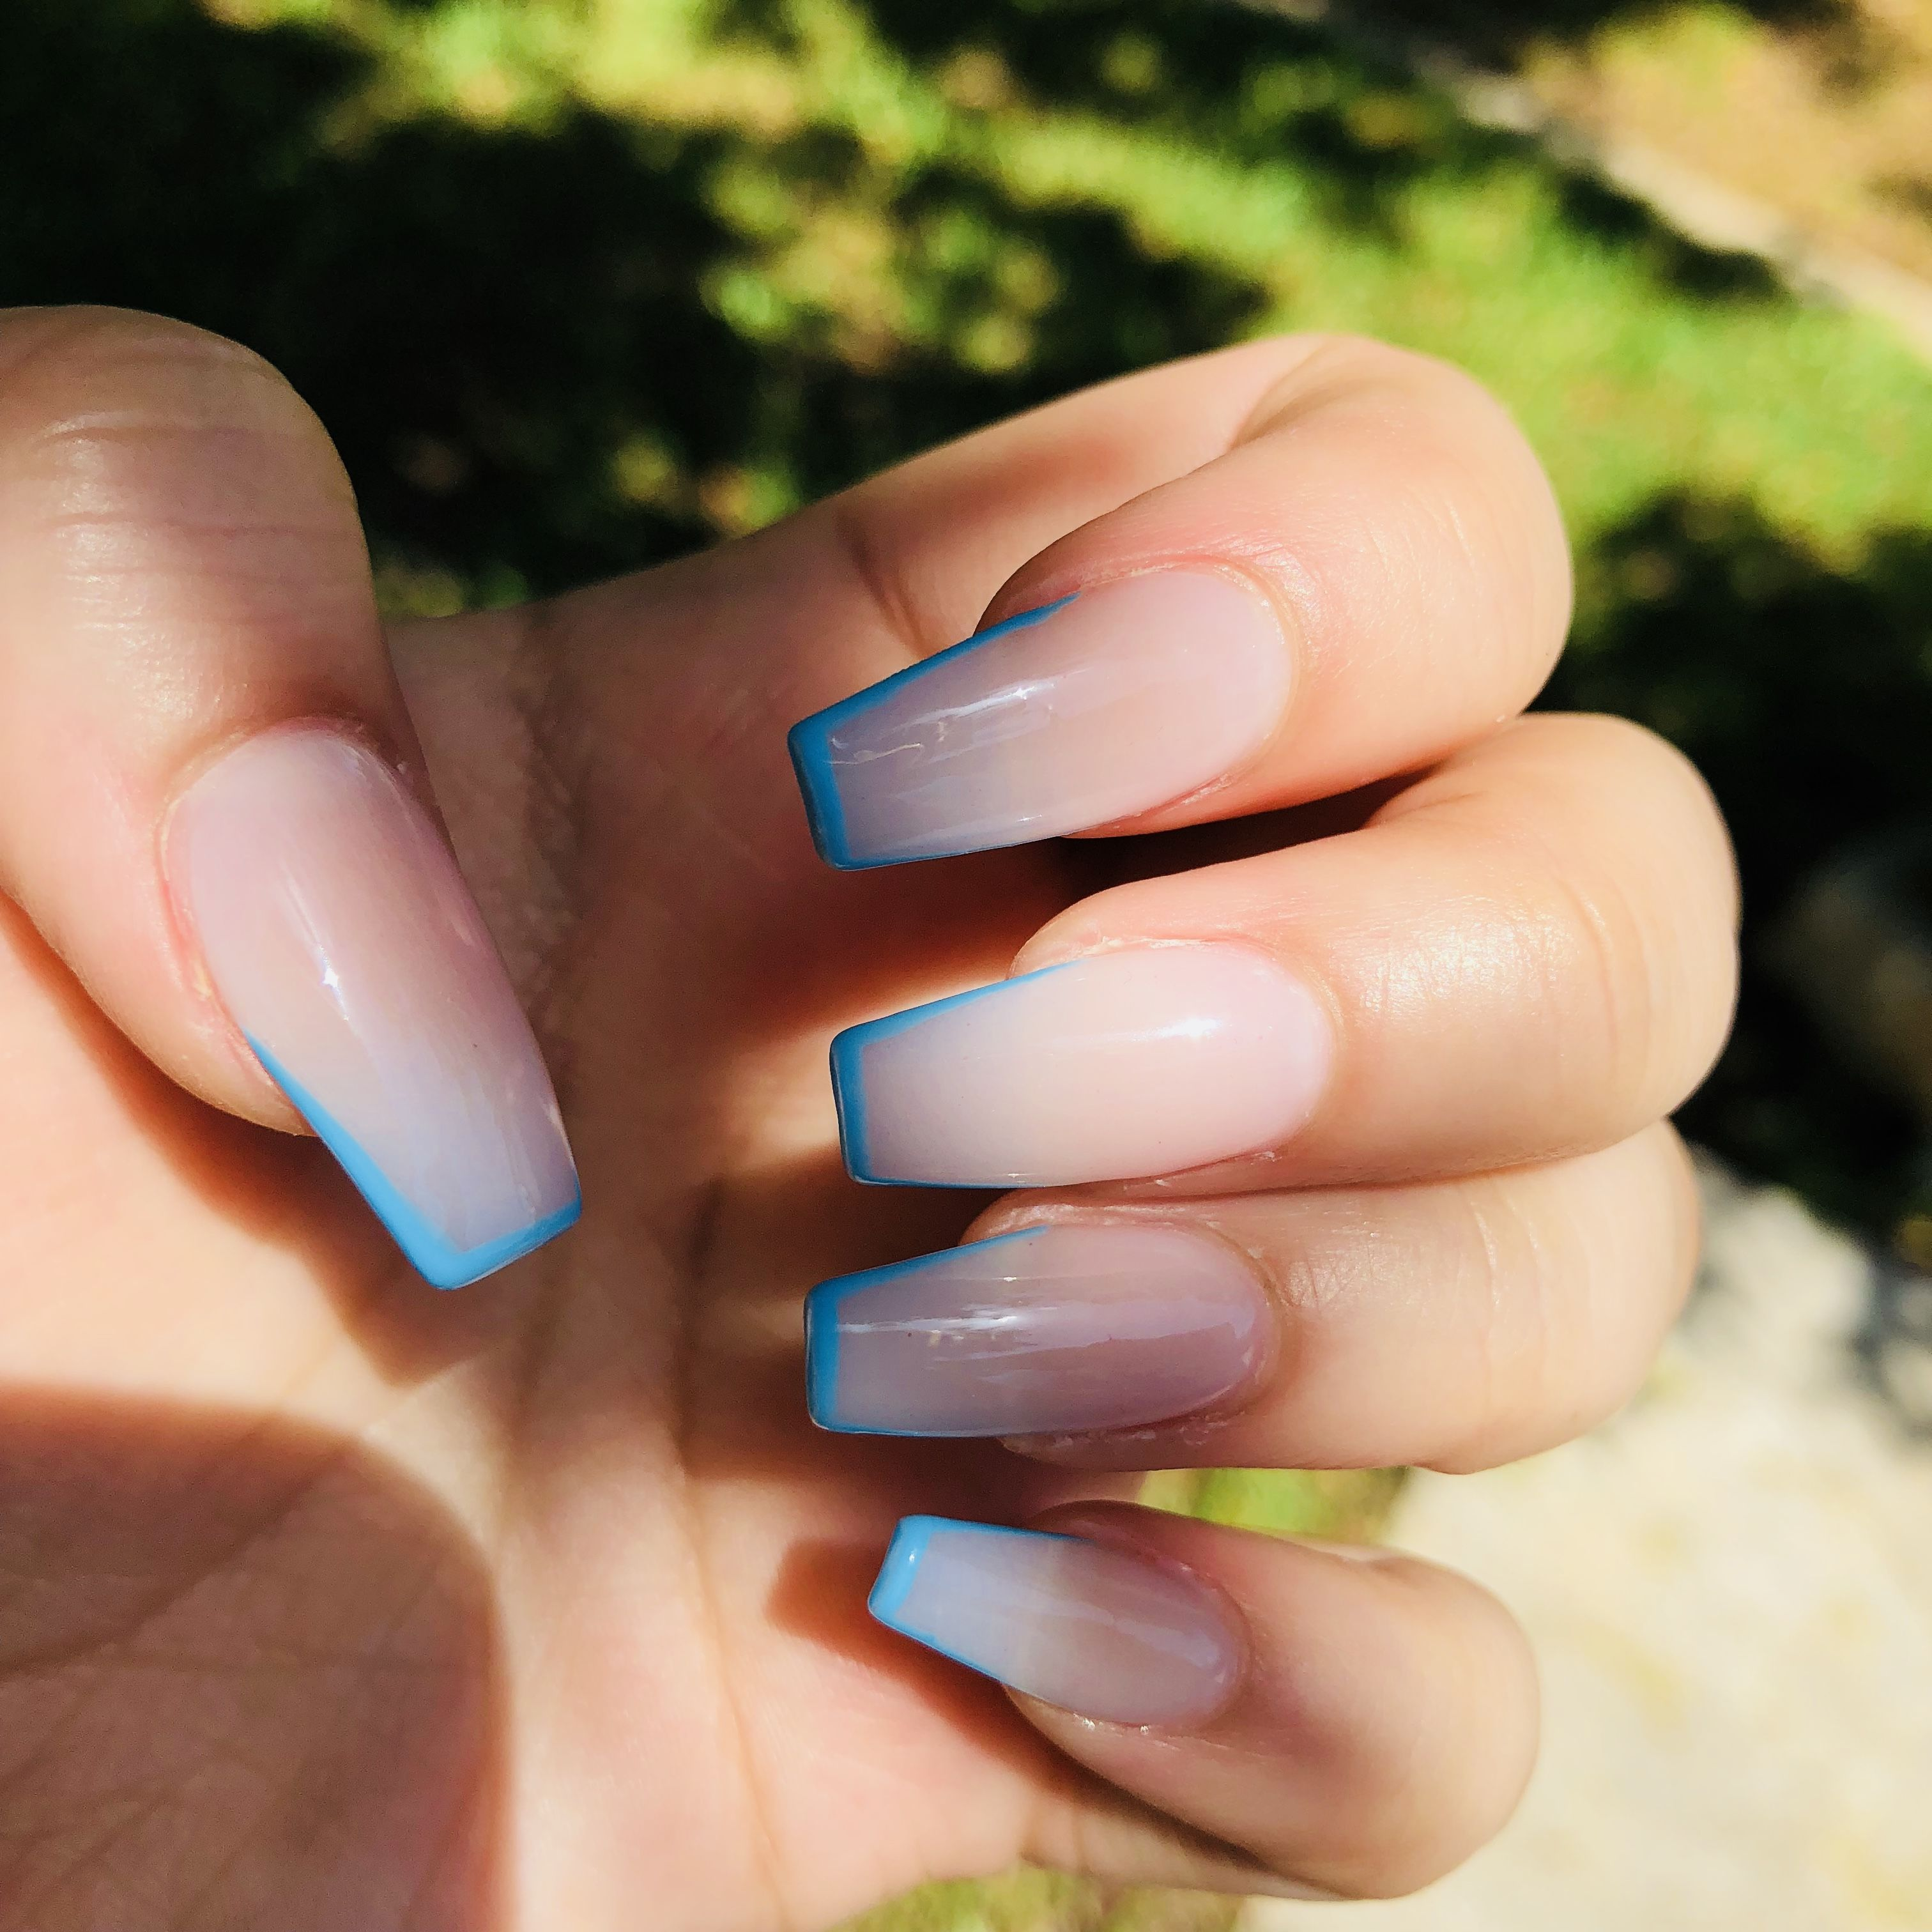 Acrylic Nails Light Blue Gel Outline Design Pretty Acrylic Nails Blue Acrylic Nails Acrylic Nails